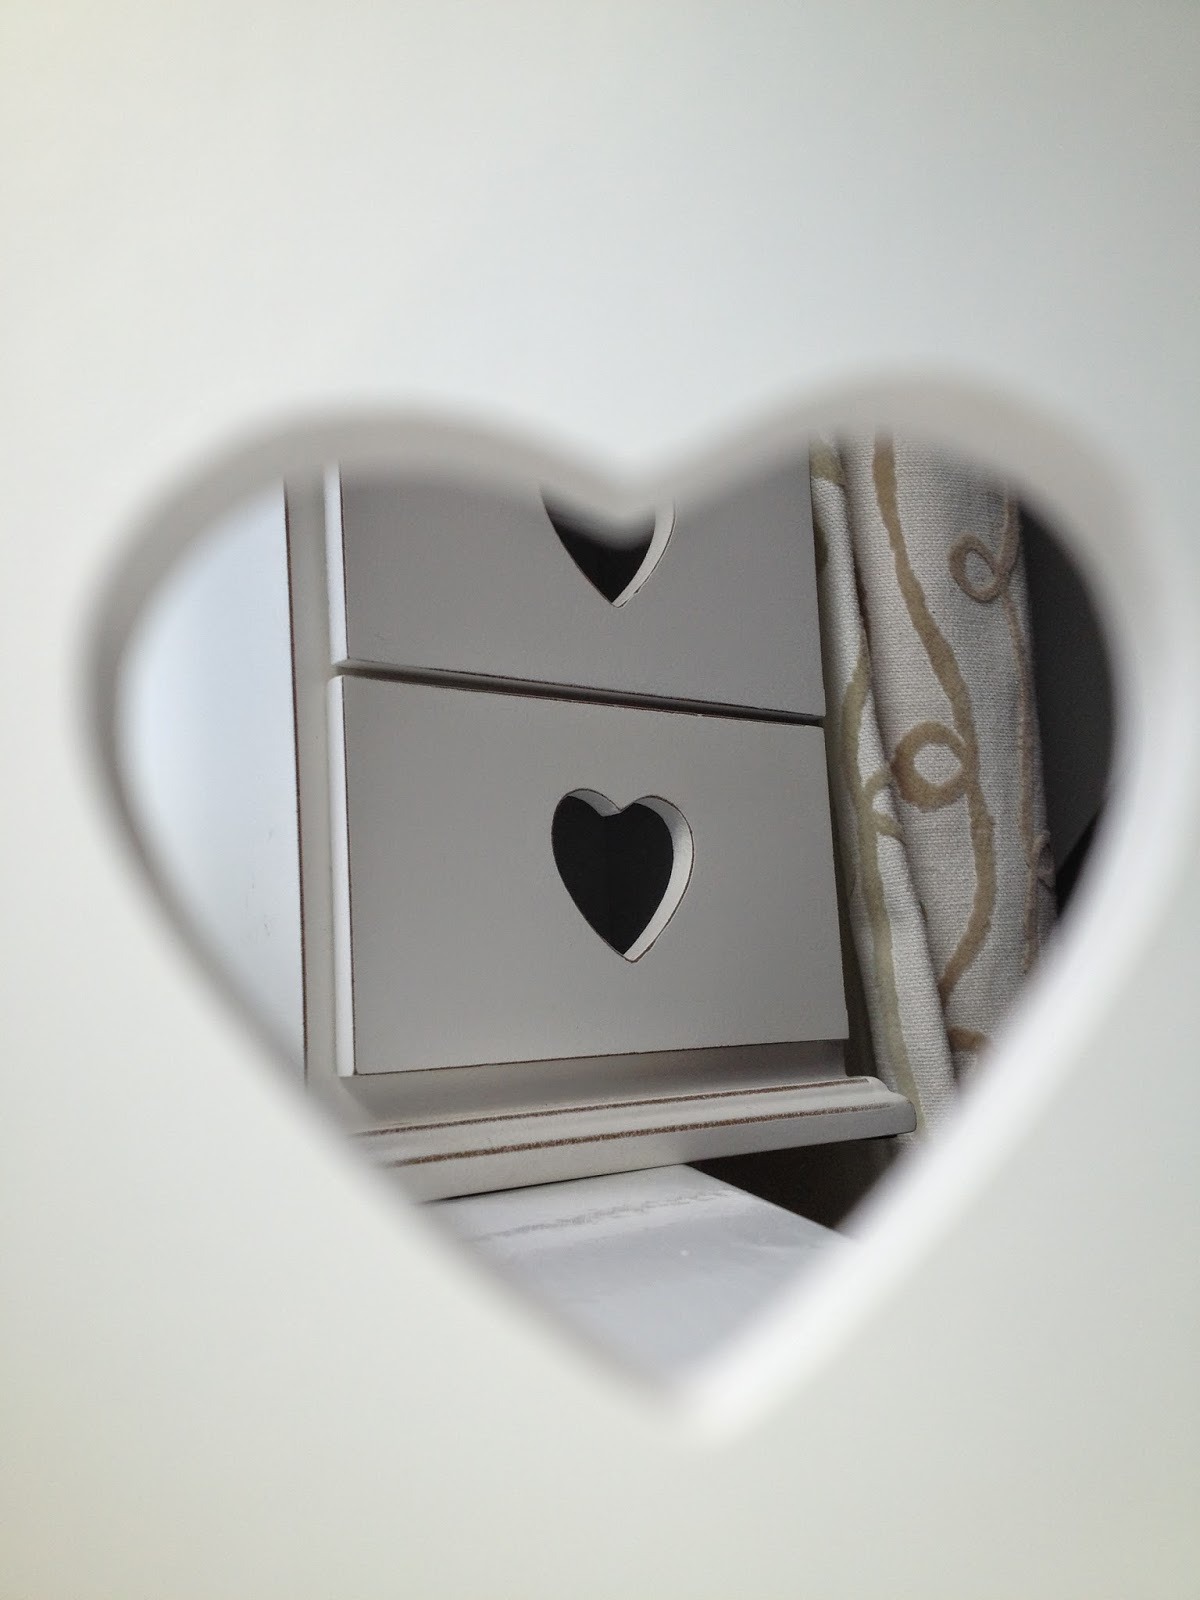 Homeware Haul: Heart Drawer || Life as a Petite